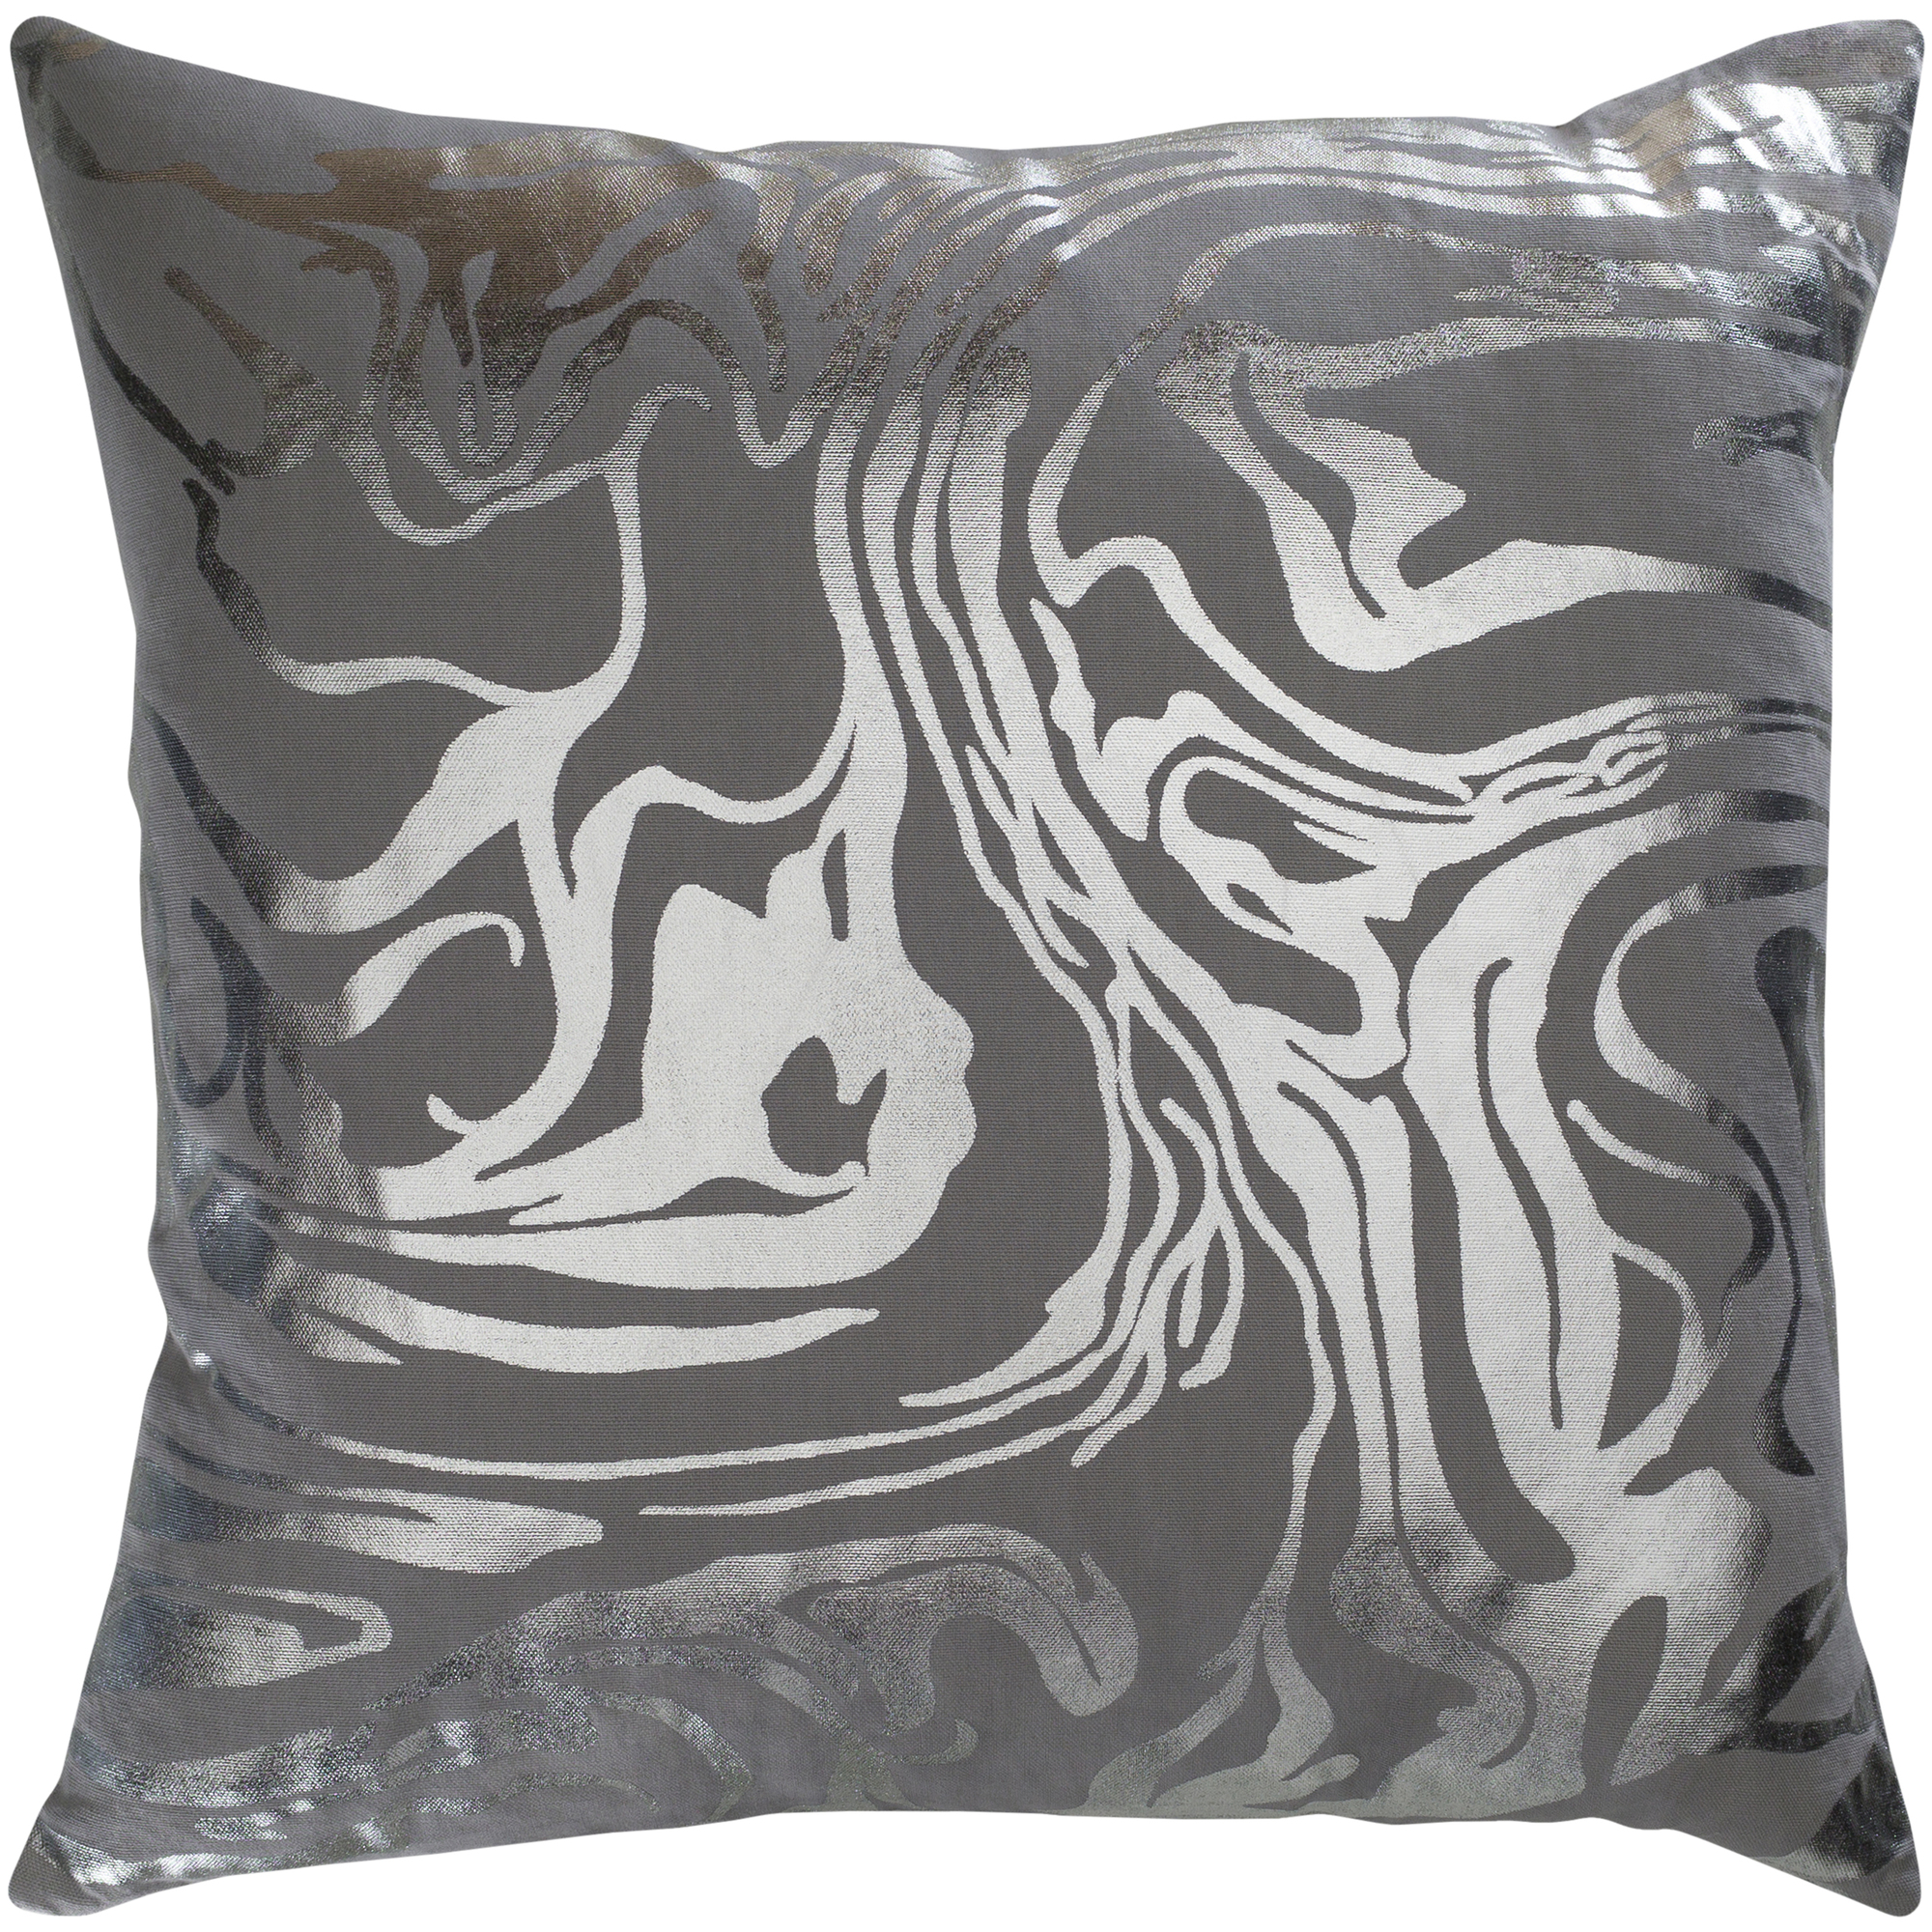 "Art of Knot Minervah 18"" x 18"" Pillow (with Poly Fill)"